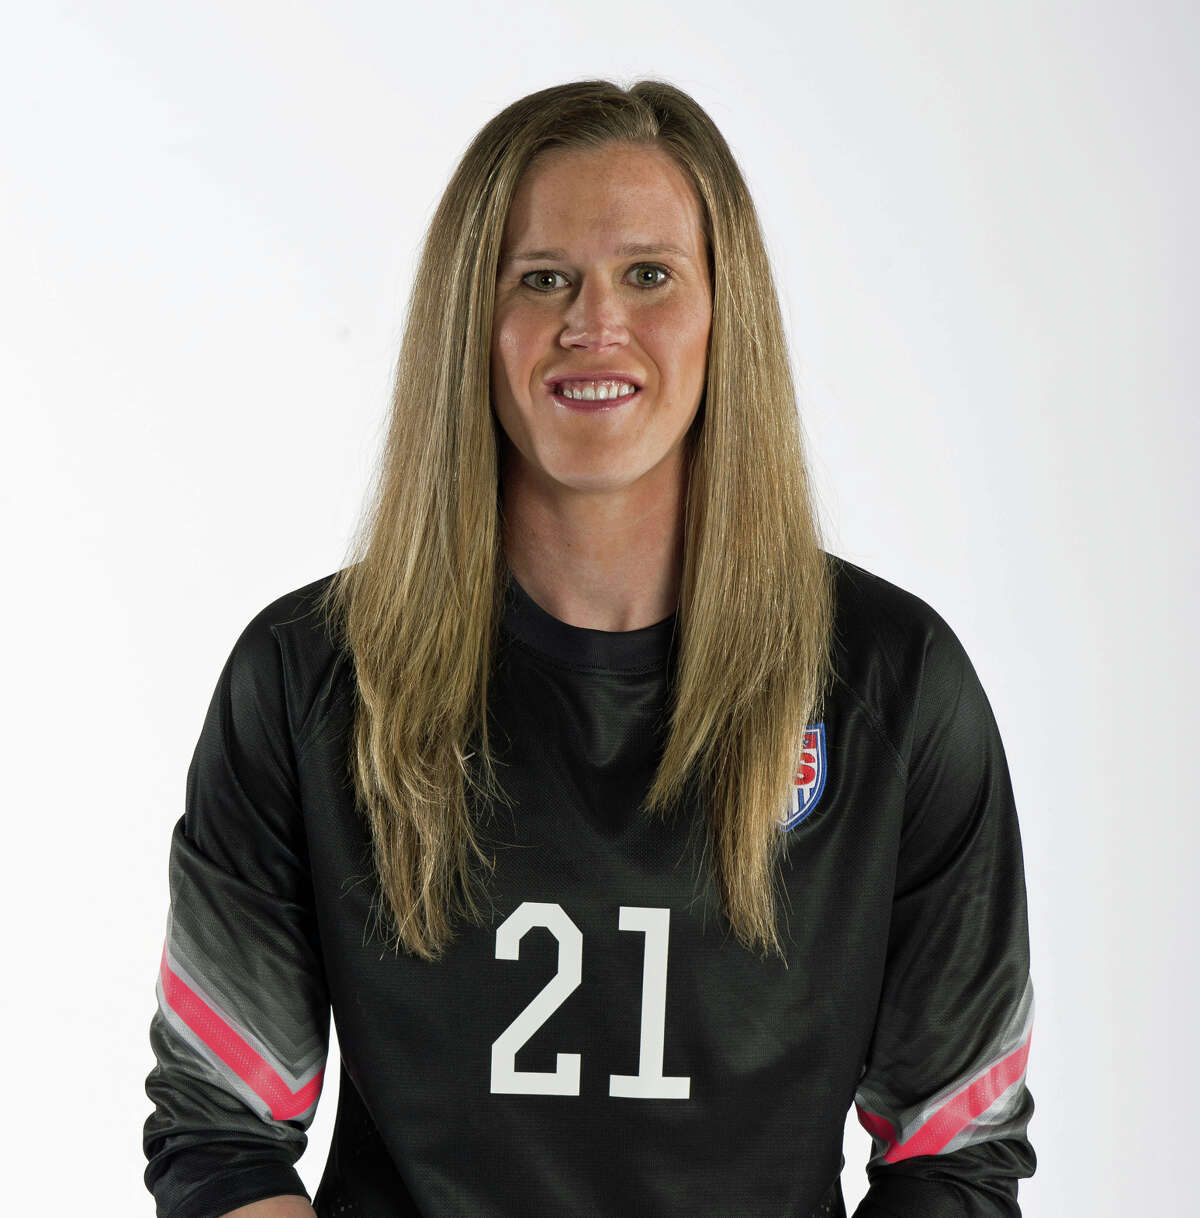 Alyssa Naeher, who grew up in Seymour and graduated from Christian Heritage School in Trumbull, is a goalkeeper on the U.S. national team. Team USA will face Japan on Sunday, July 5, 2015, for the FIFA Women's World Cup championship.